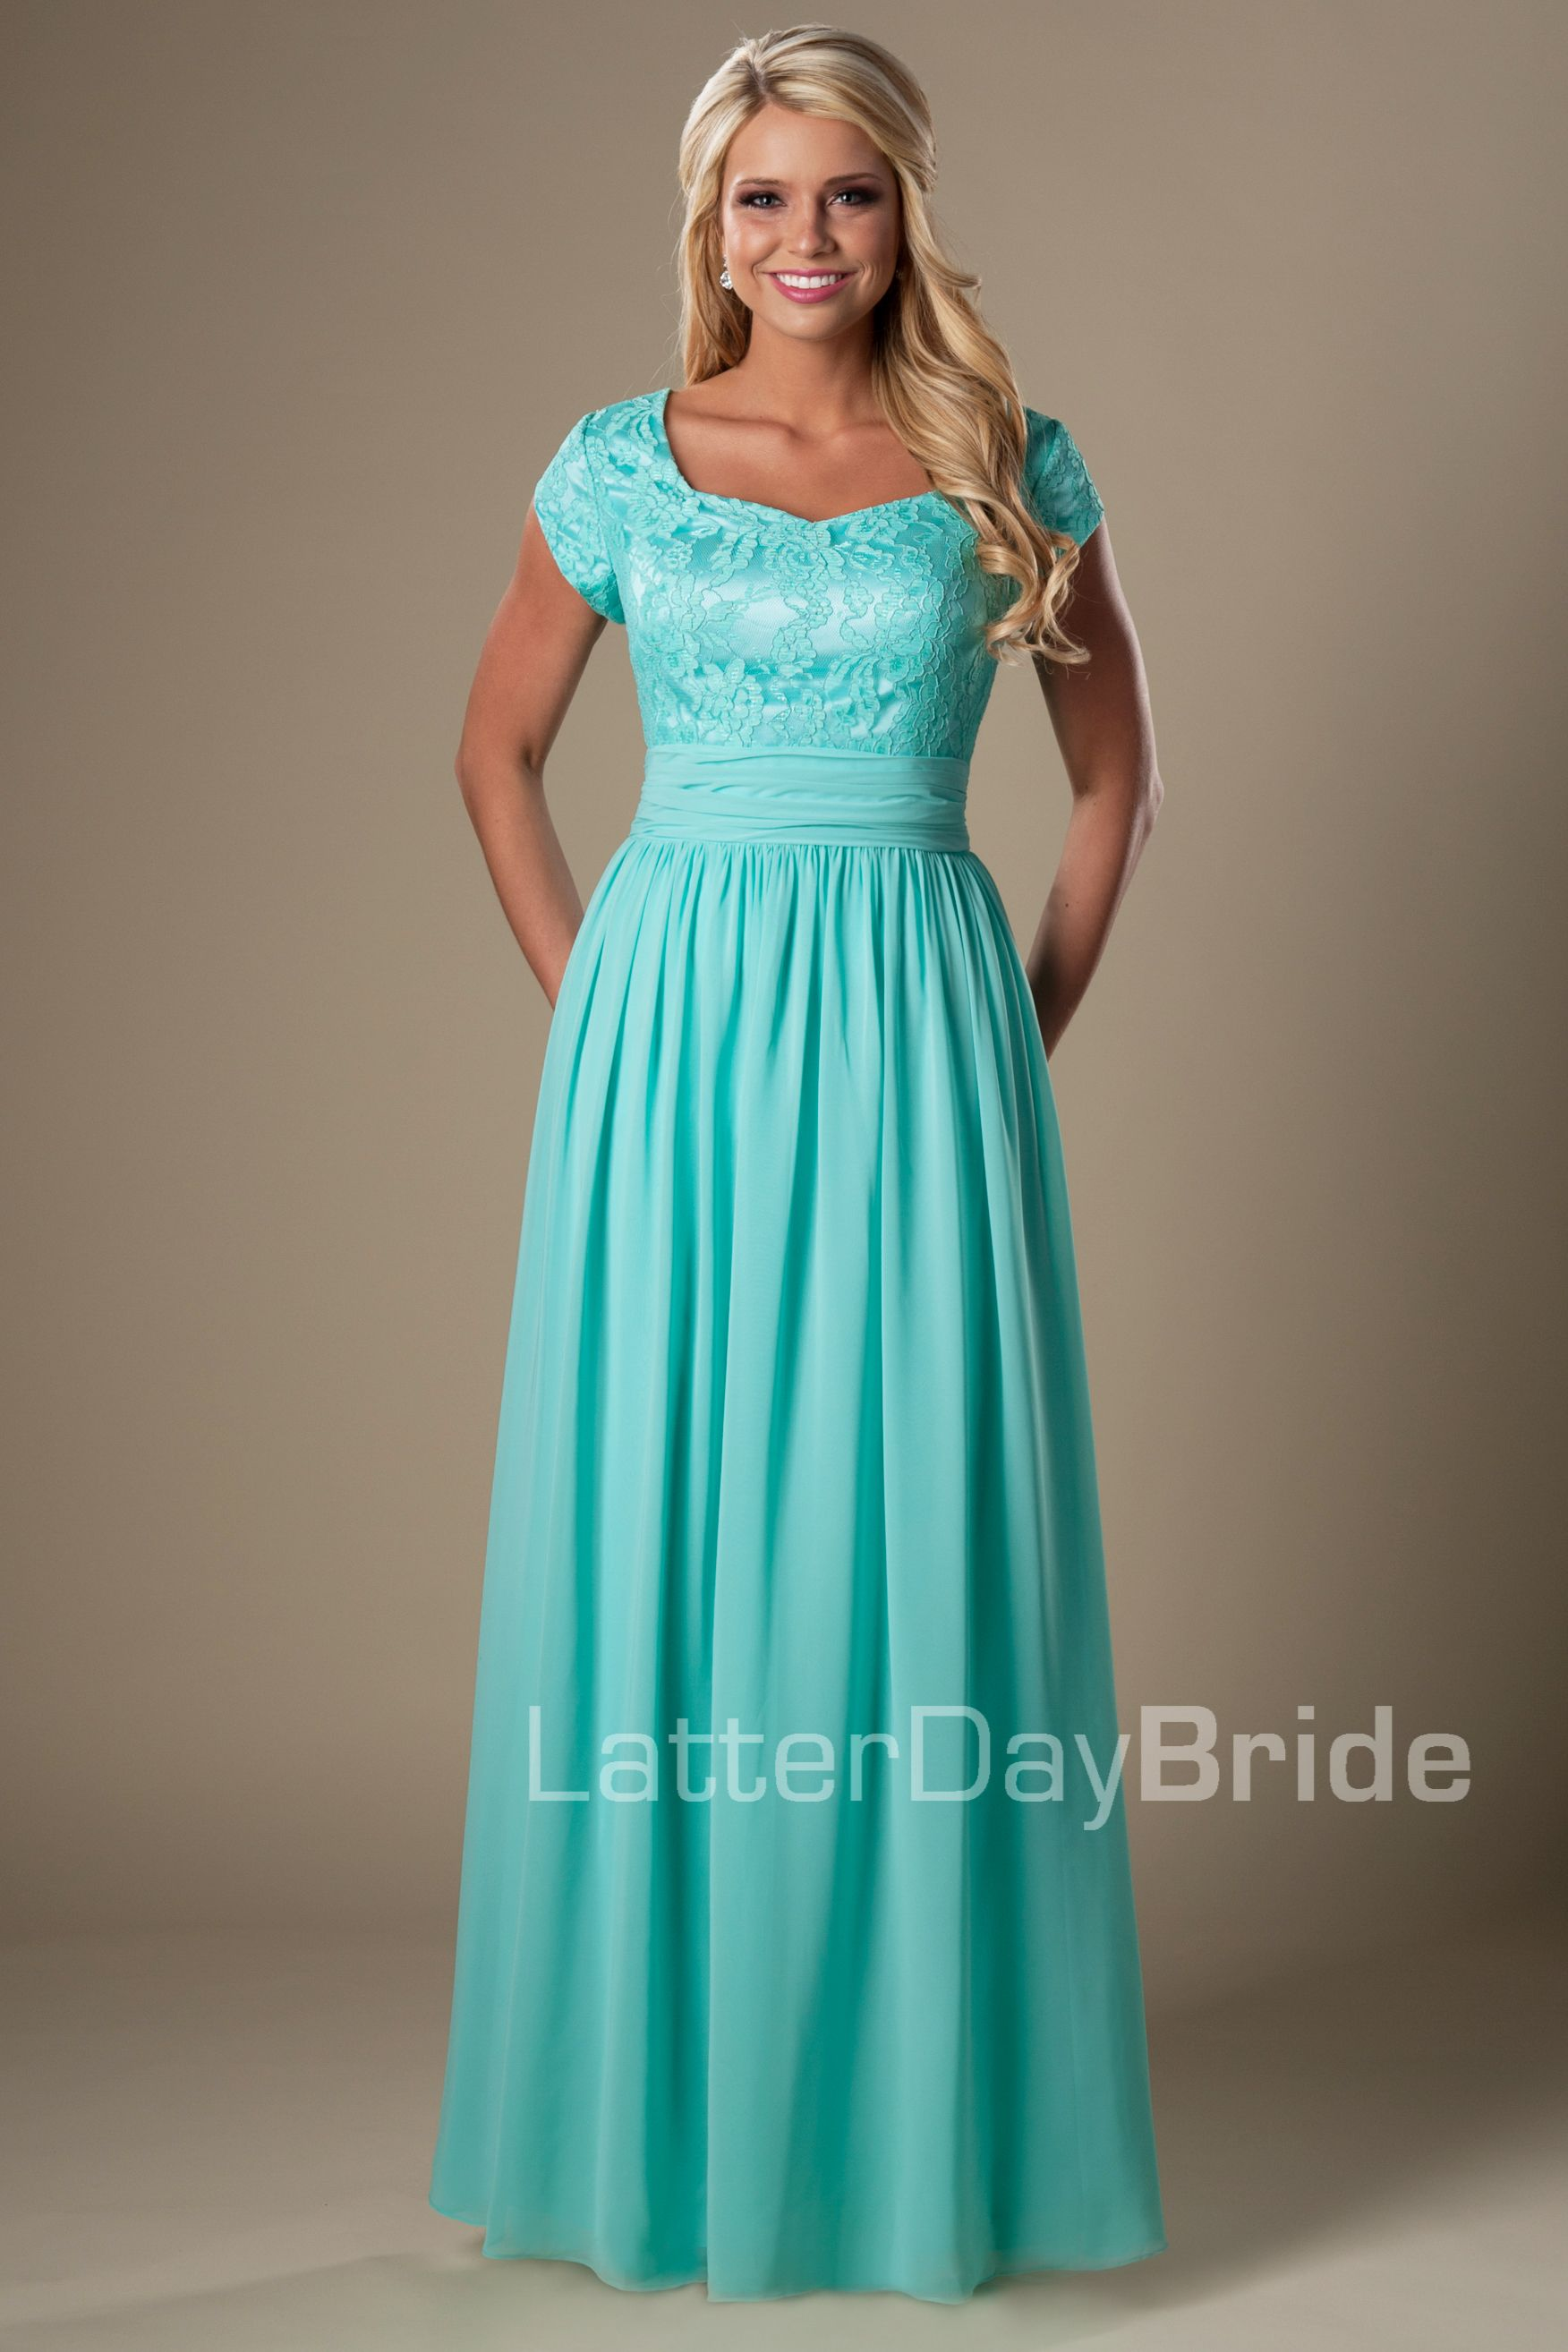 Nice Macys Bridesmaid Dress Picture Collection - All Wedding Dresses ...